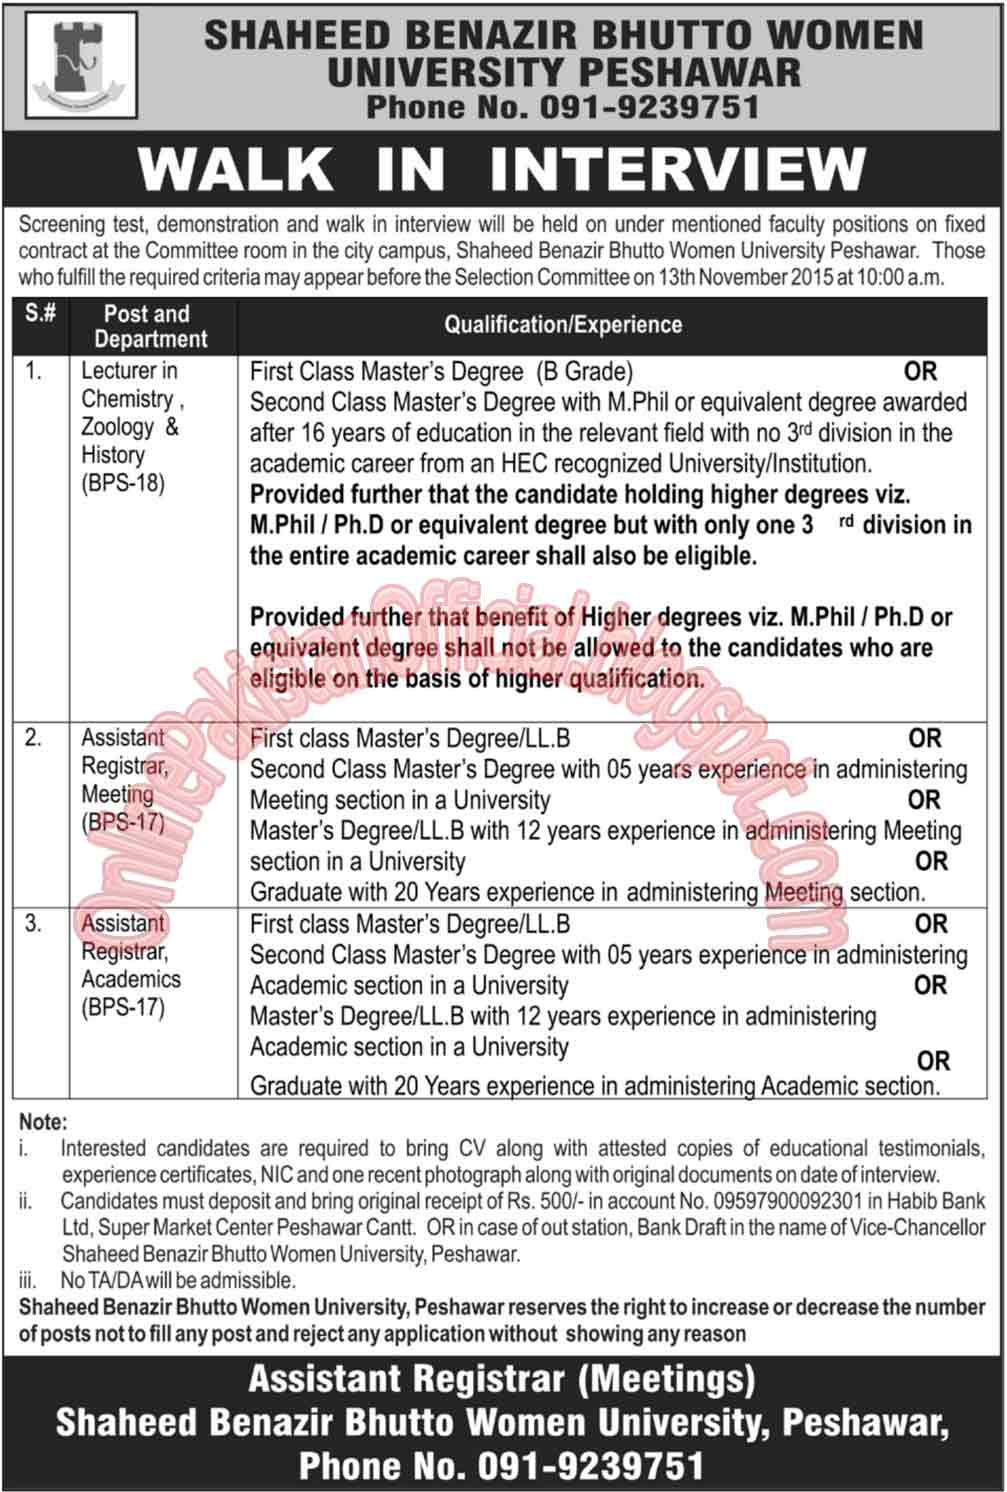 Faculty Required For Shaheed Benazir Bhutto Women University, Peshawar